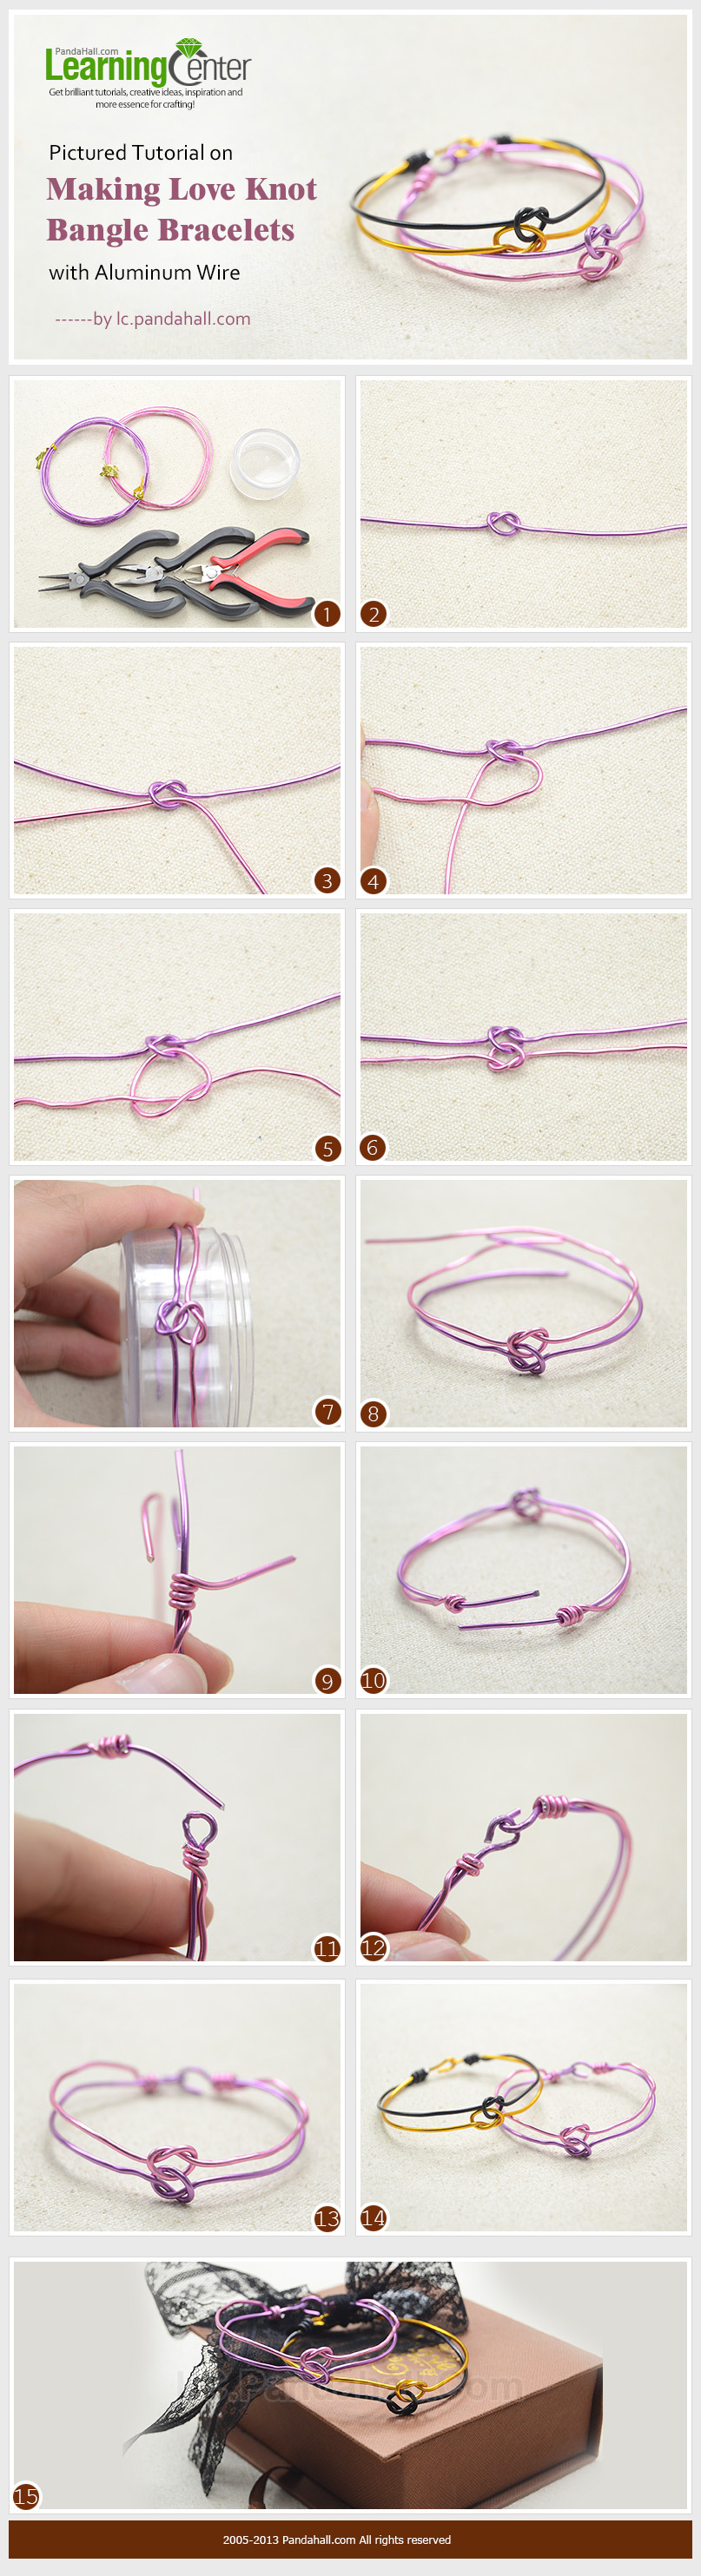 Pictured Tutorial on Making Love Knot Bangle Bracelets with Aluminum ...